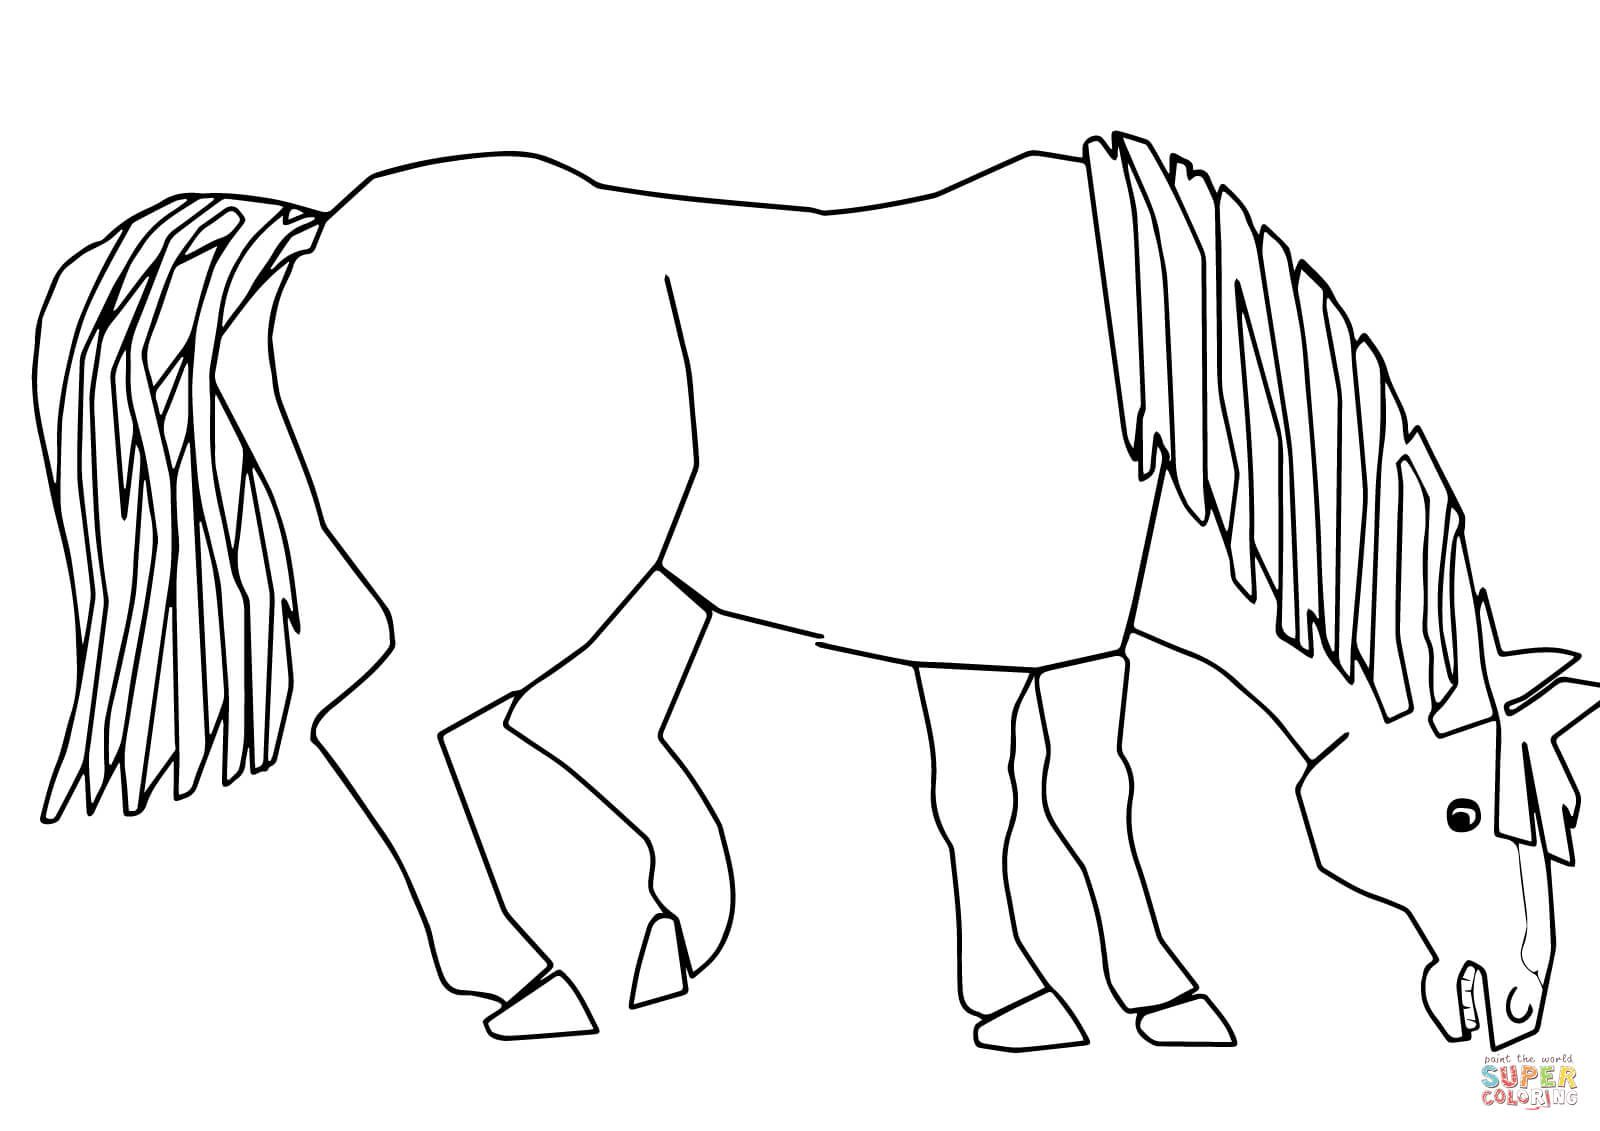 Blue Horse Blue Horse What Do You See Coloring Page From